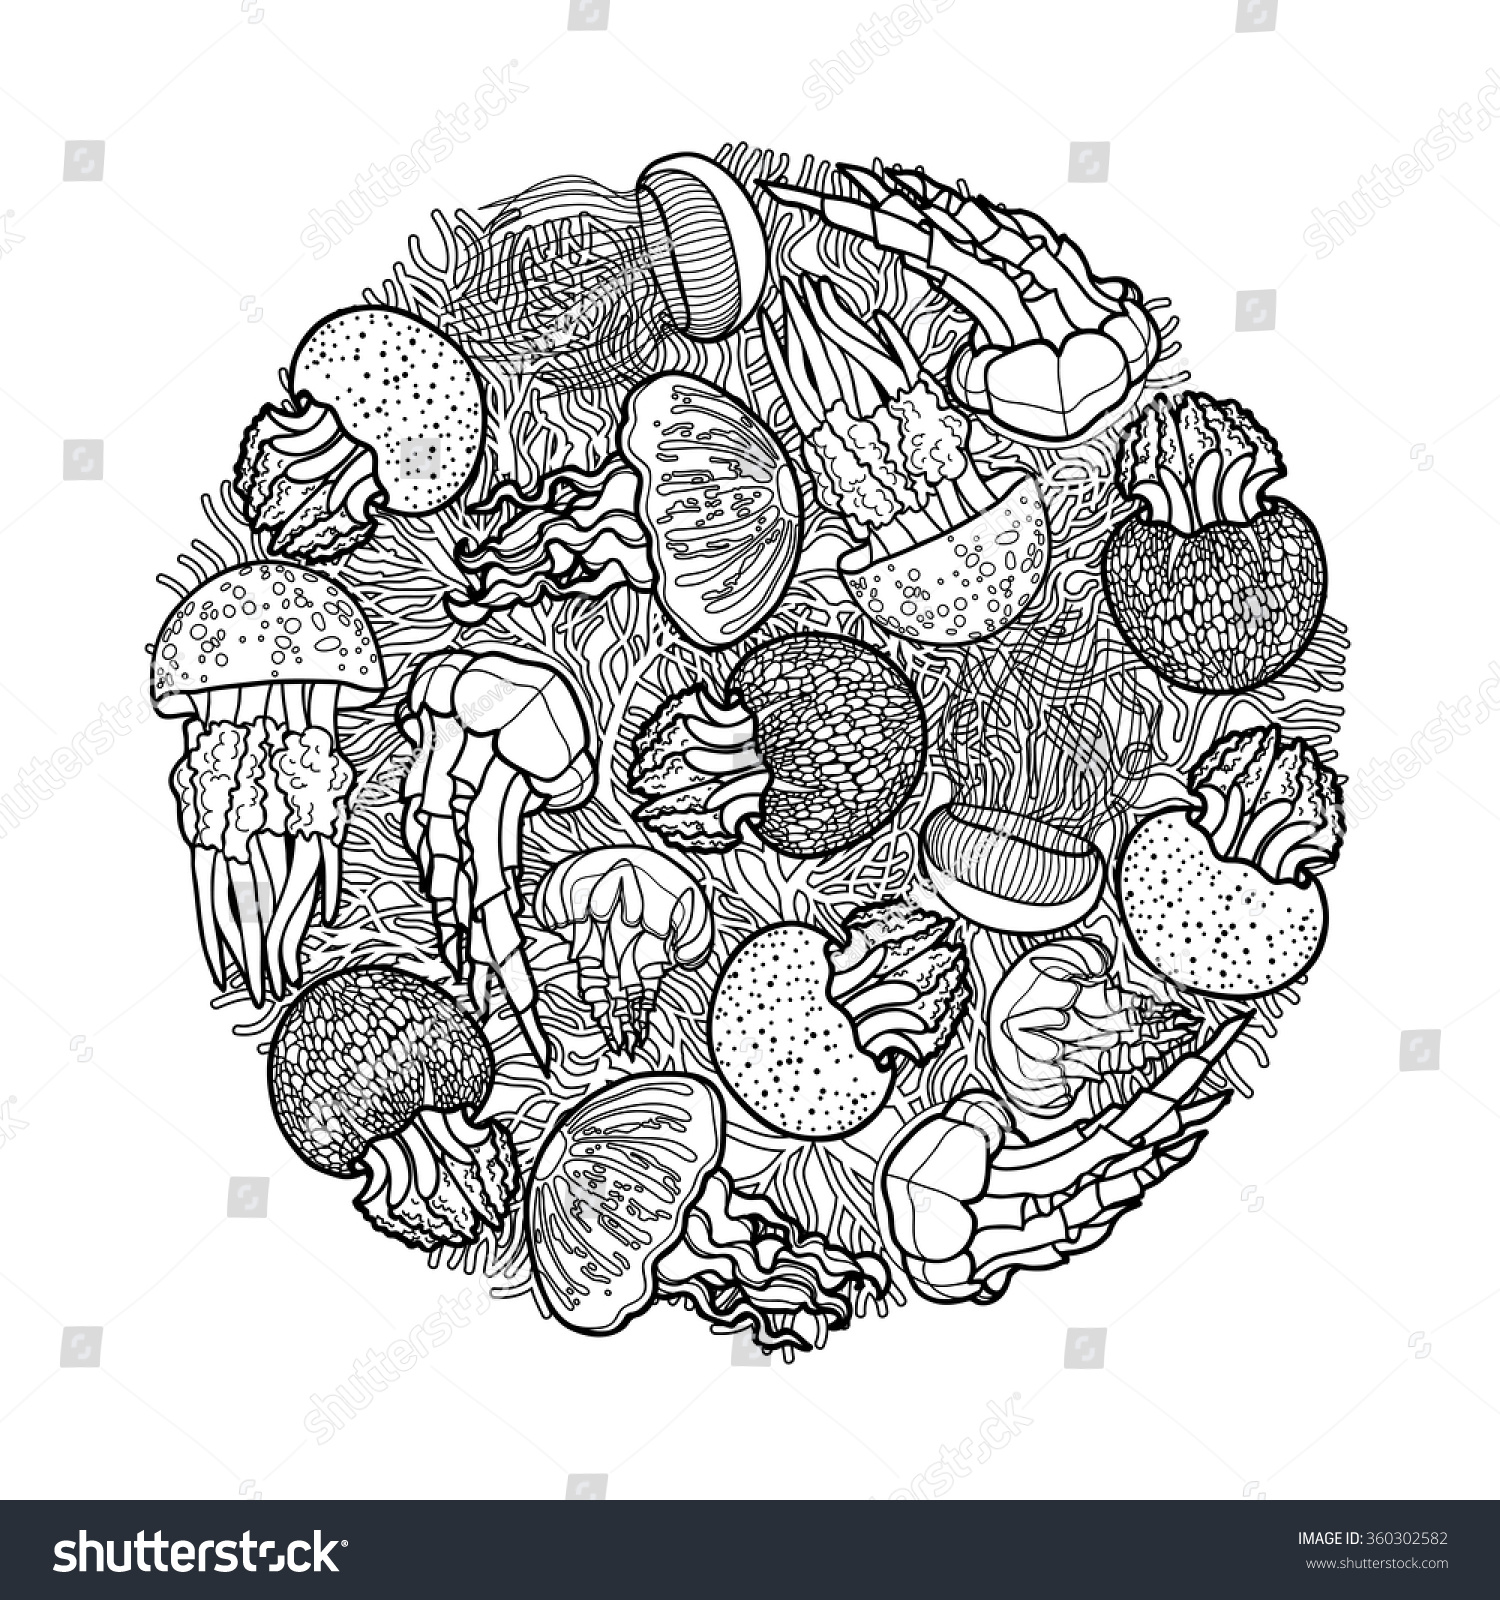 Coloring pages jellyfish - Swirl Of Jellyfish Drawn In Line Art Style Ocean Card In Black And White Colors